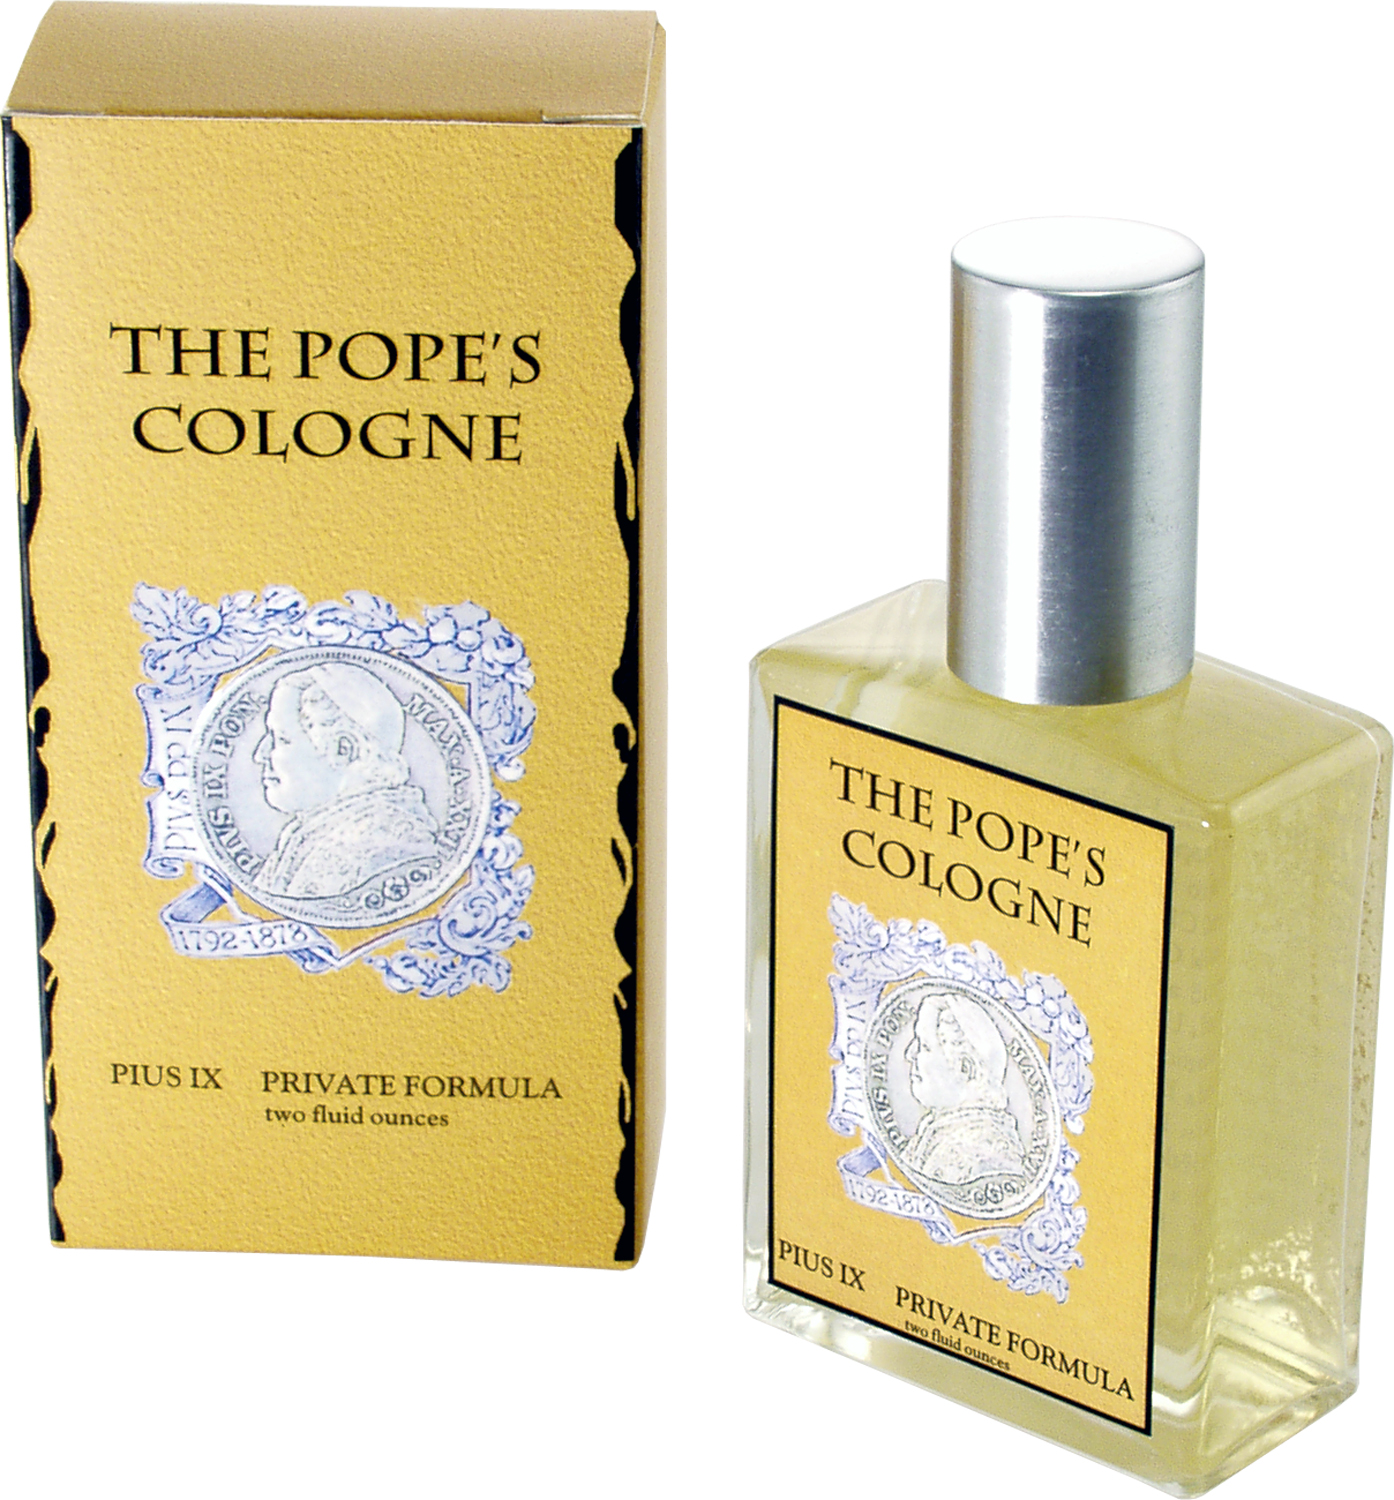 Image result for the pope's cologne